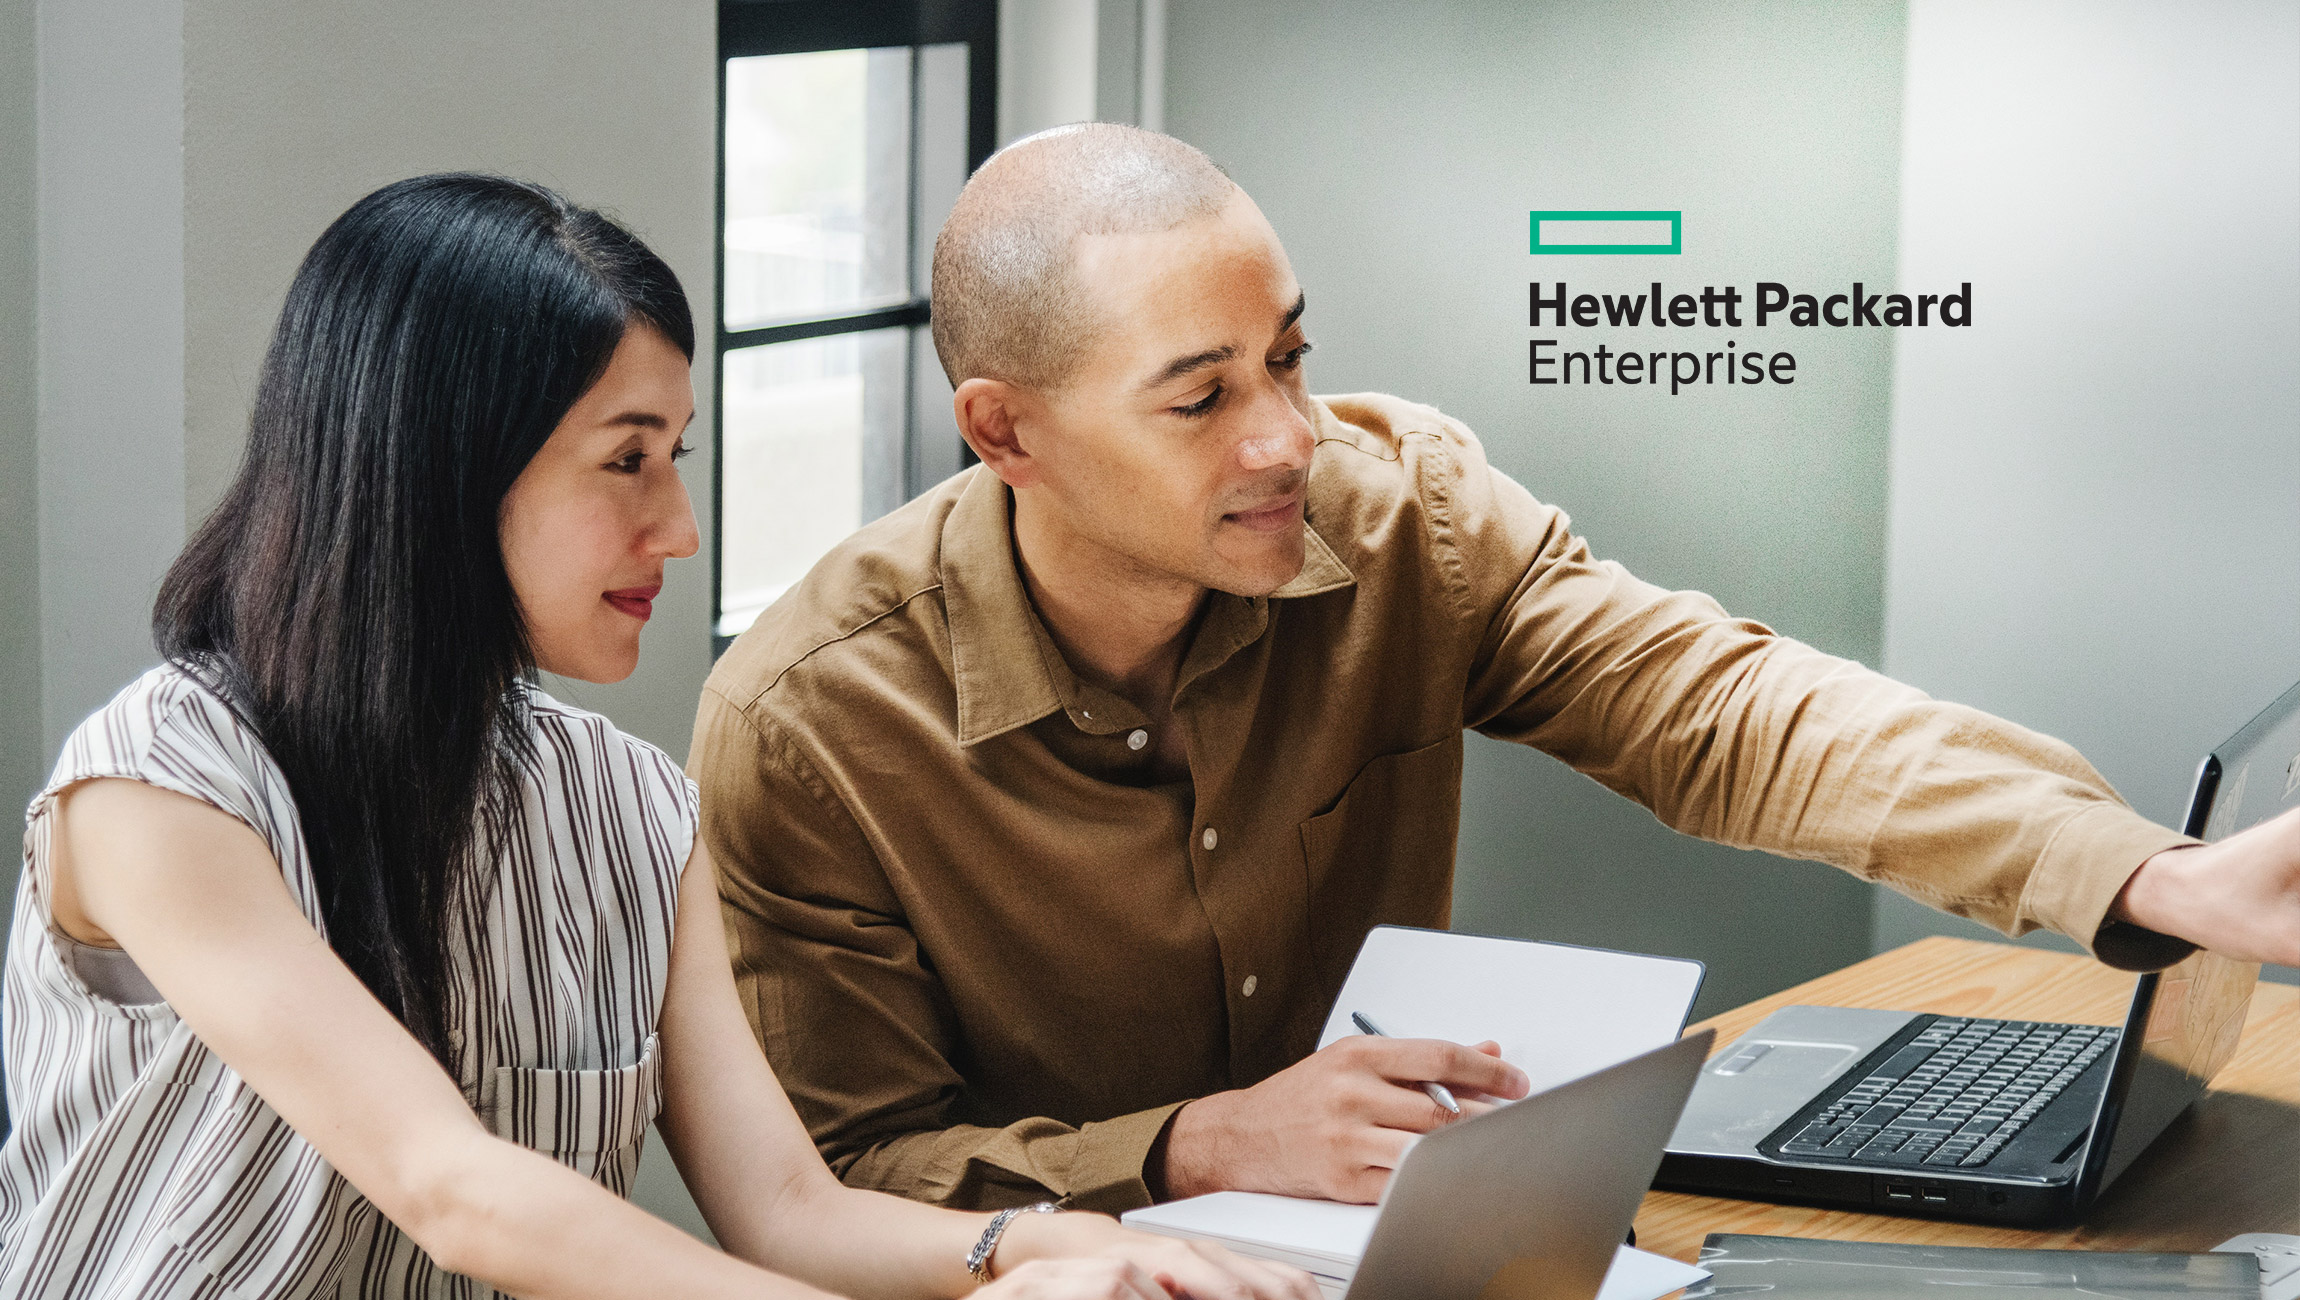 Hewlett Packard Enterprise Introduces Channel Programs and New HPE GreenLake Cloud Services to Help Partners Deliver the Cloud Experience Everywhere